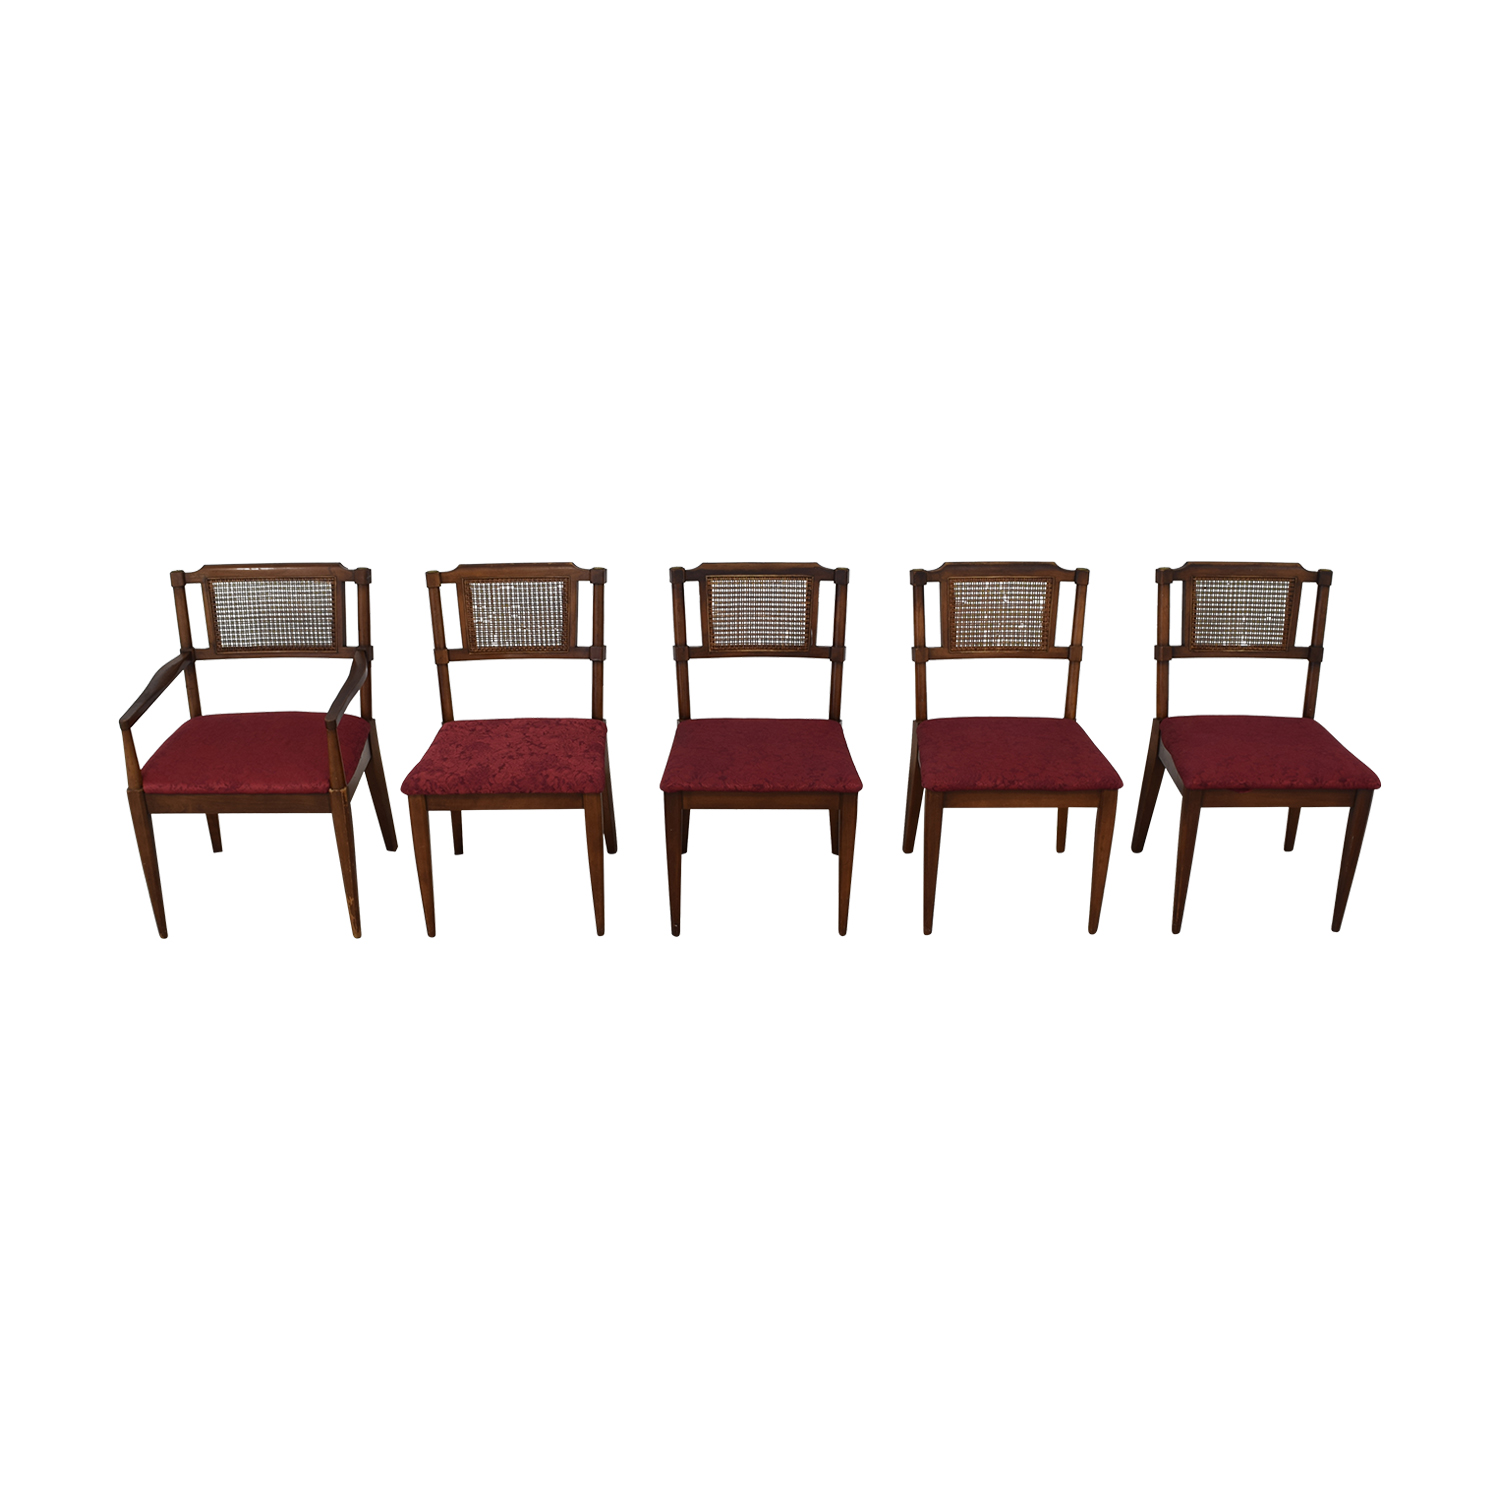 R & E Gordon Furniture Co. R & E Gordon Furniture Co. Dining Chairs discount